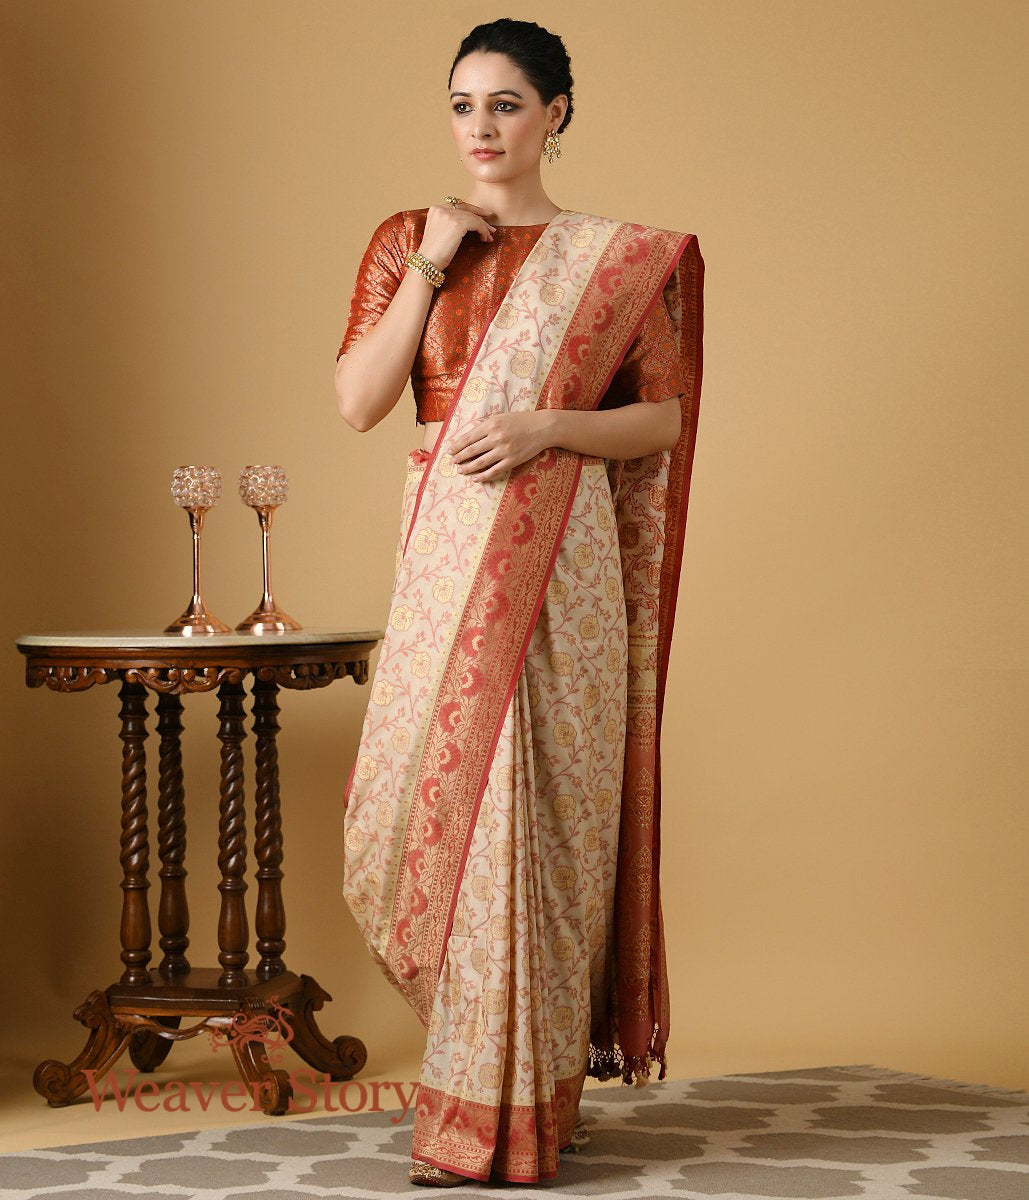 Handwoven Offwhite and Red Summer Silk Saree